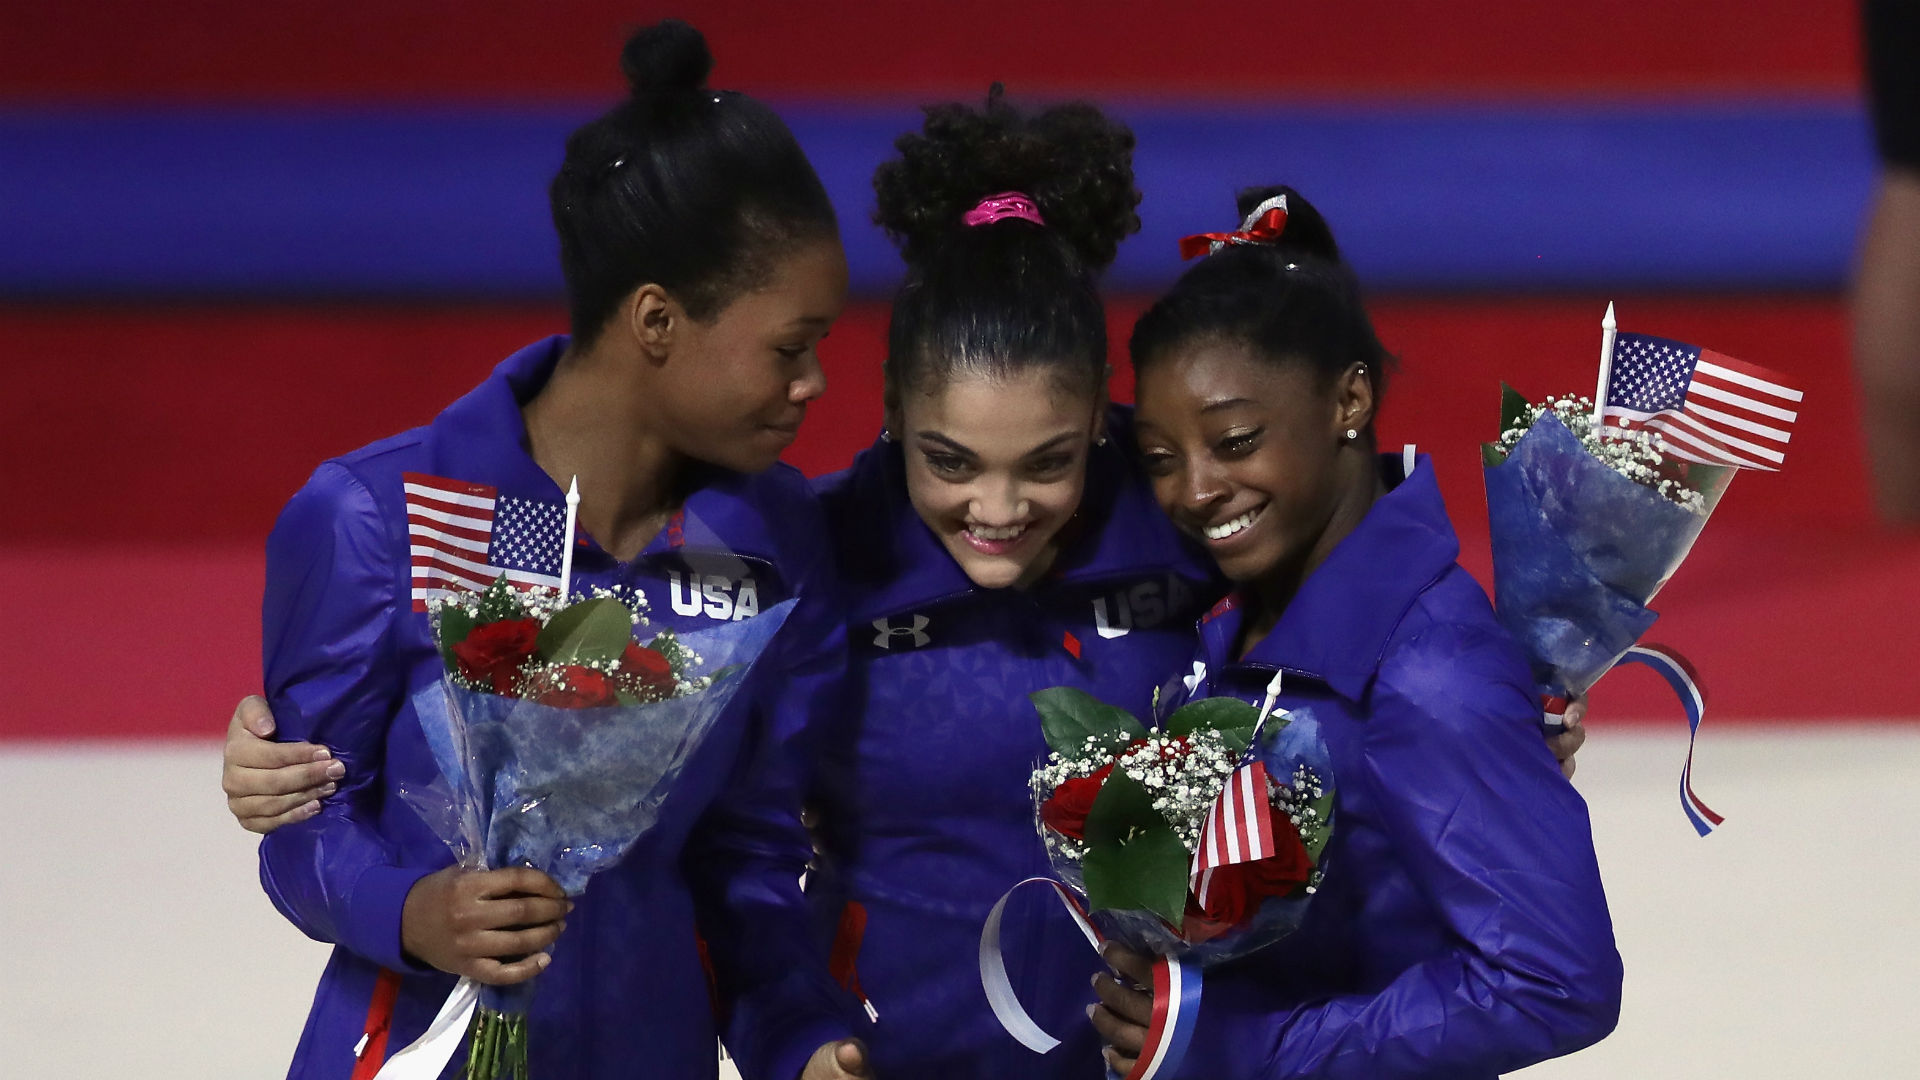 U.S. women's gymnastics team leads team-final qualifying